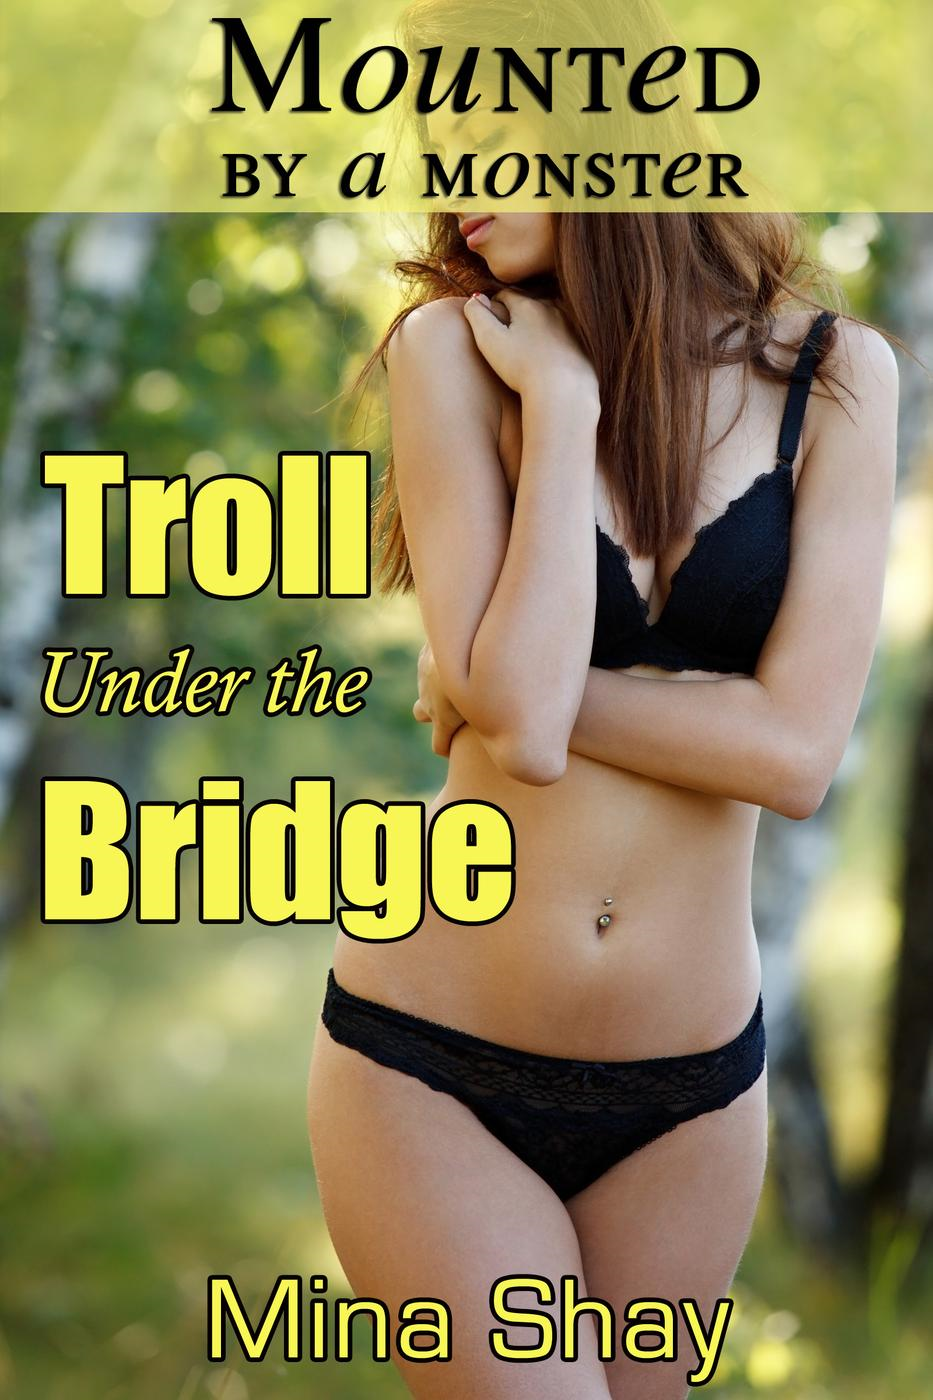 Worksheet Troll Under The Bridge Story 84 under the bridge books found mounted by a monster troll mina shay bridge